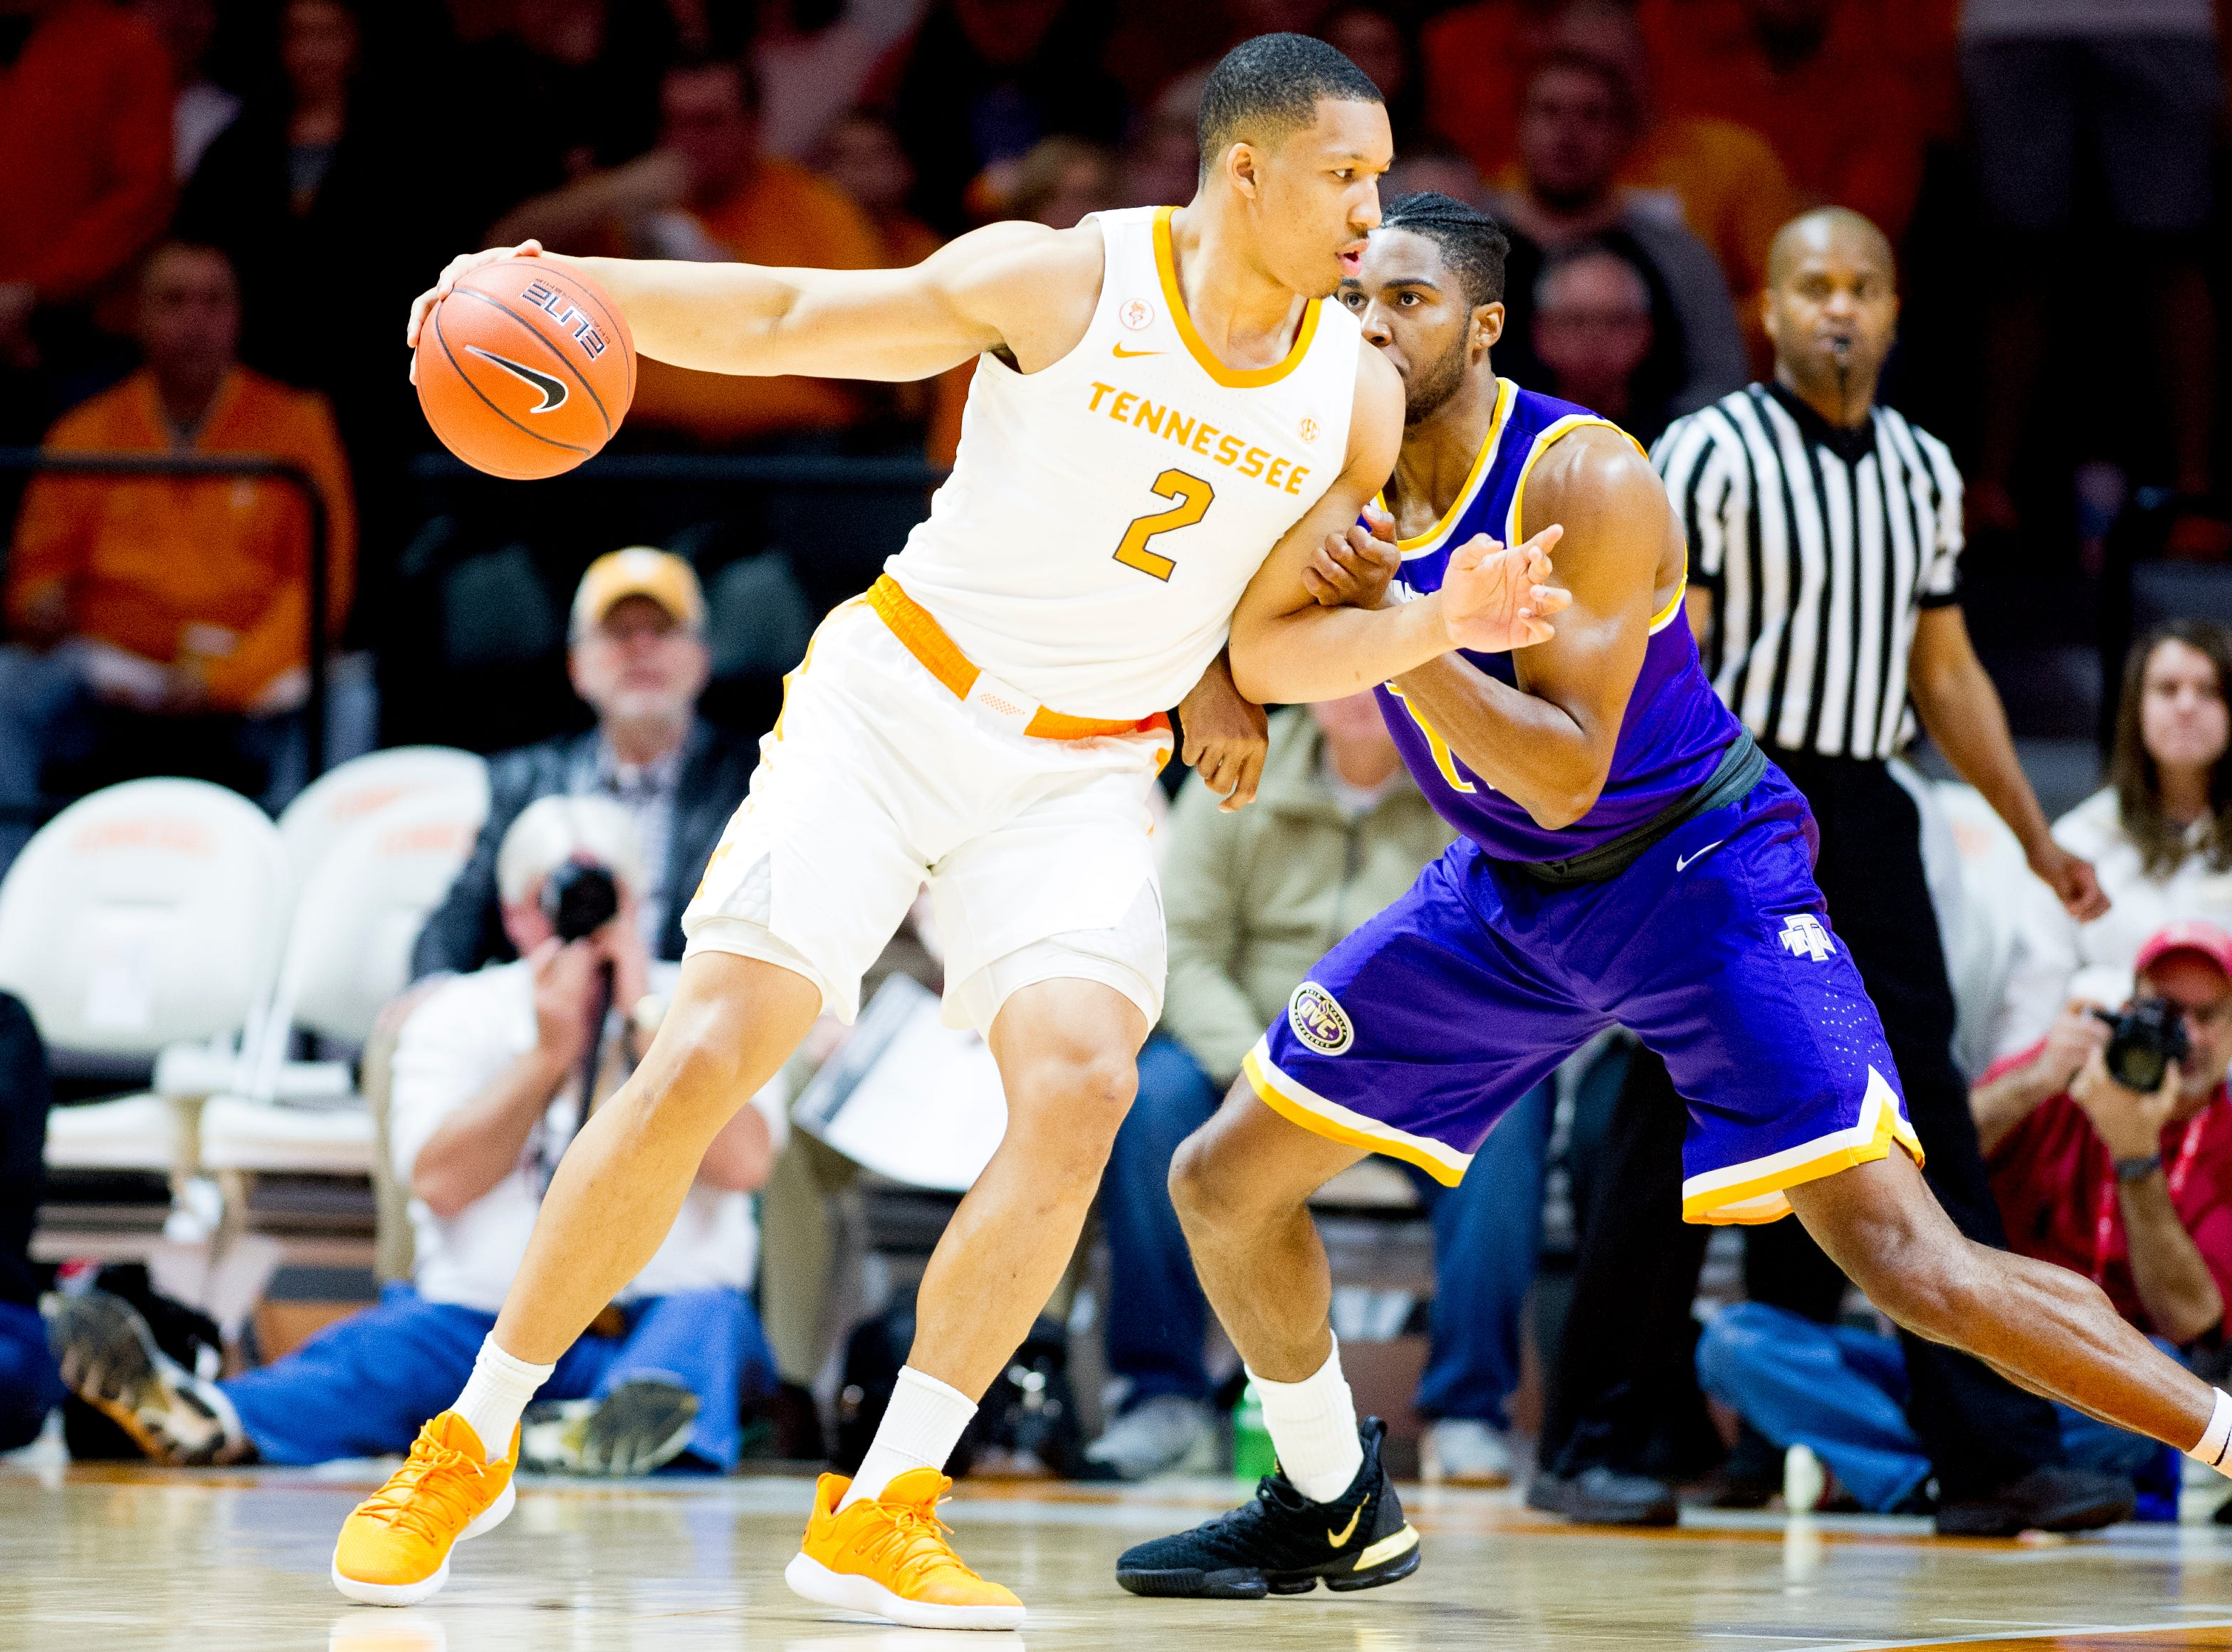 Tennessee's Grant Williams (2) tries to push toward the basket during a game between Tennessee and Tennessee Tech at Thompson-Boling Arena in Knoxville, Tennessee on Saturday, December 29, 2018.